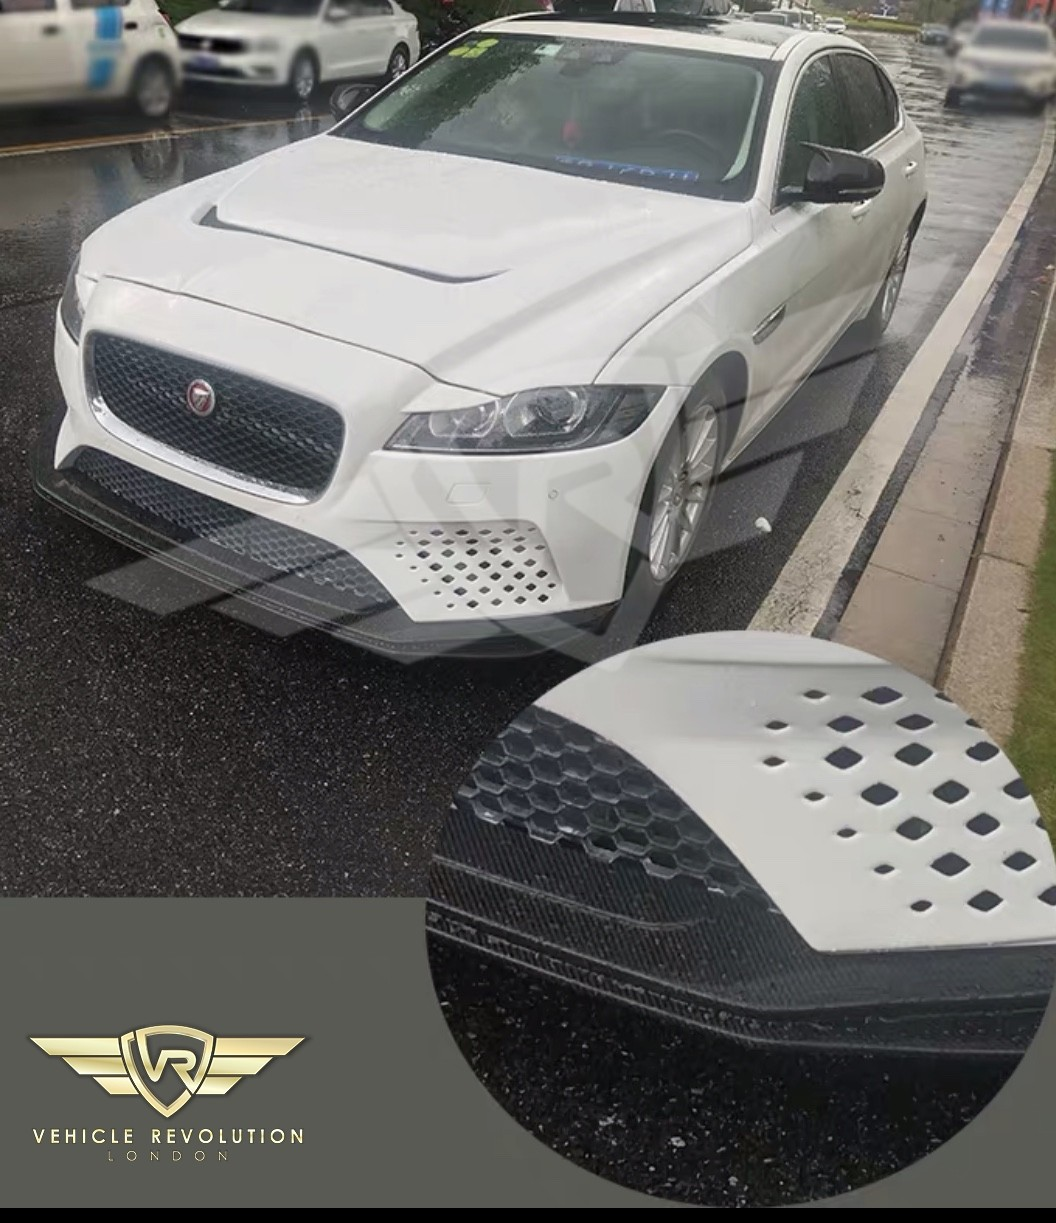 Jaguar Xf X260: JAGUAR XF X260 PROJECT 8 STYLE FRONT BUMPER UPGRADE FOR